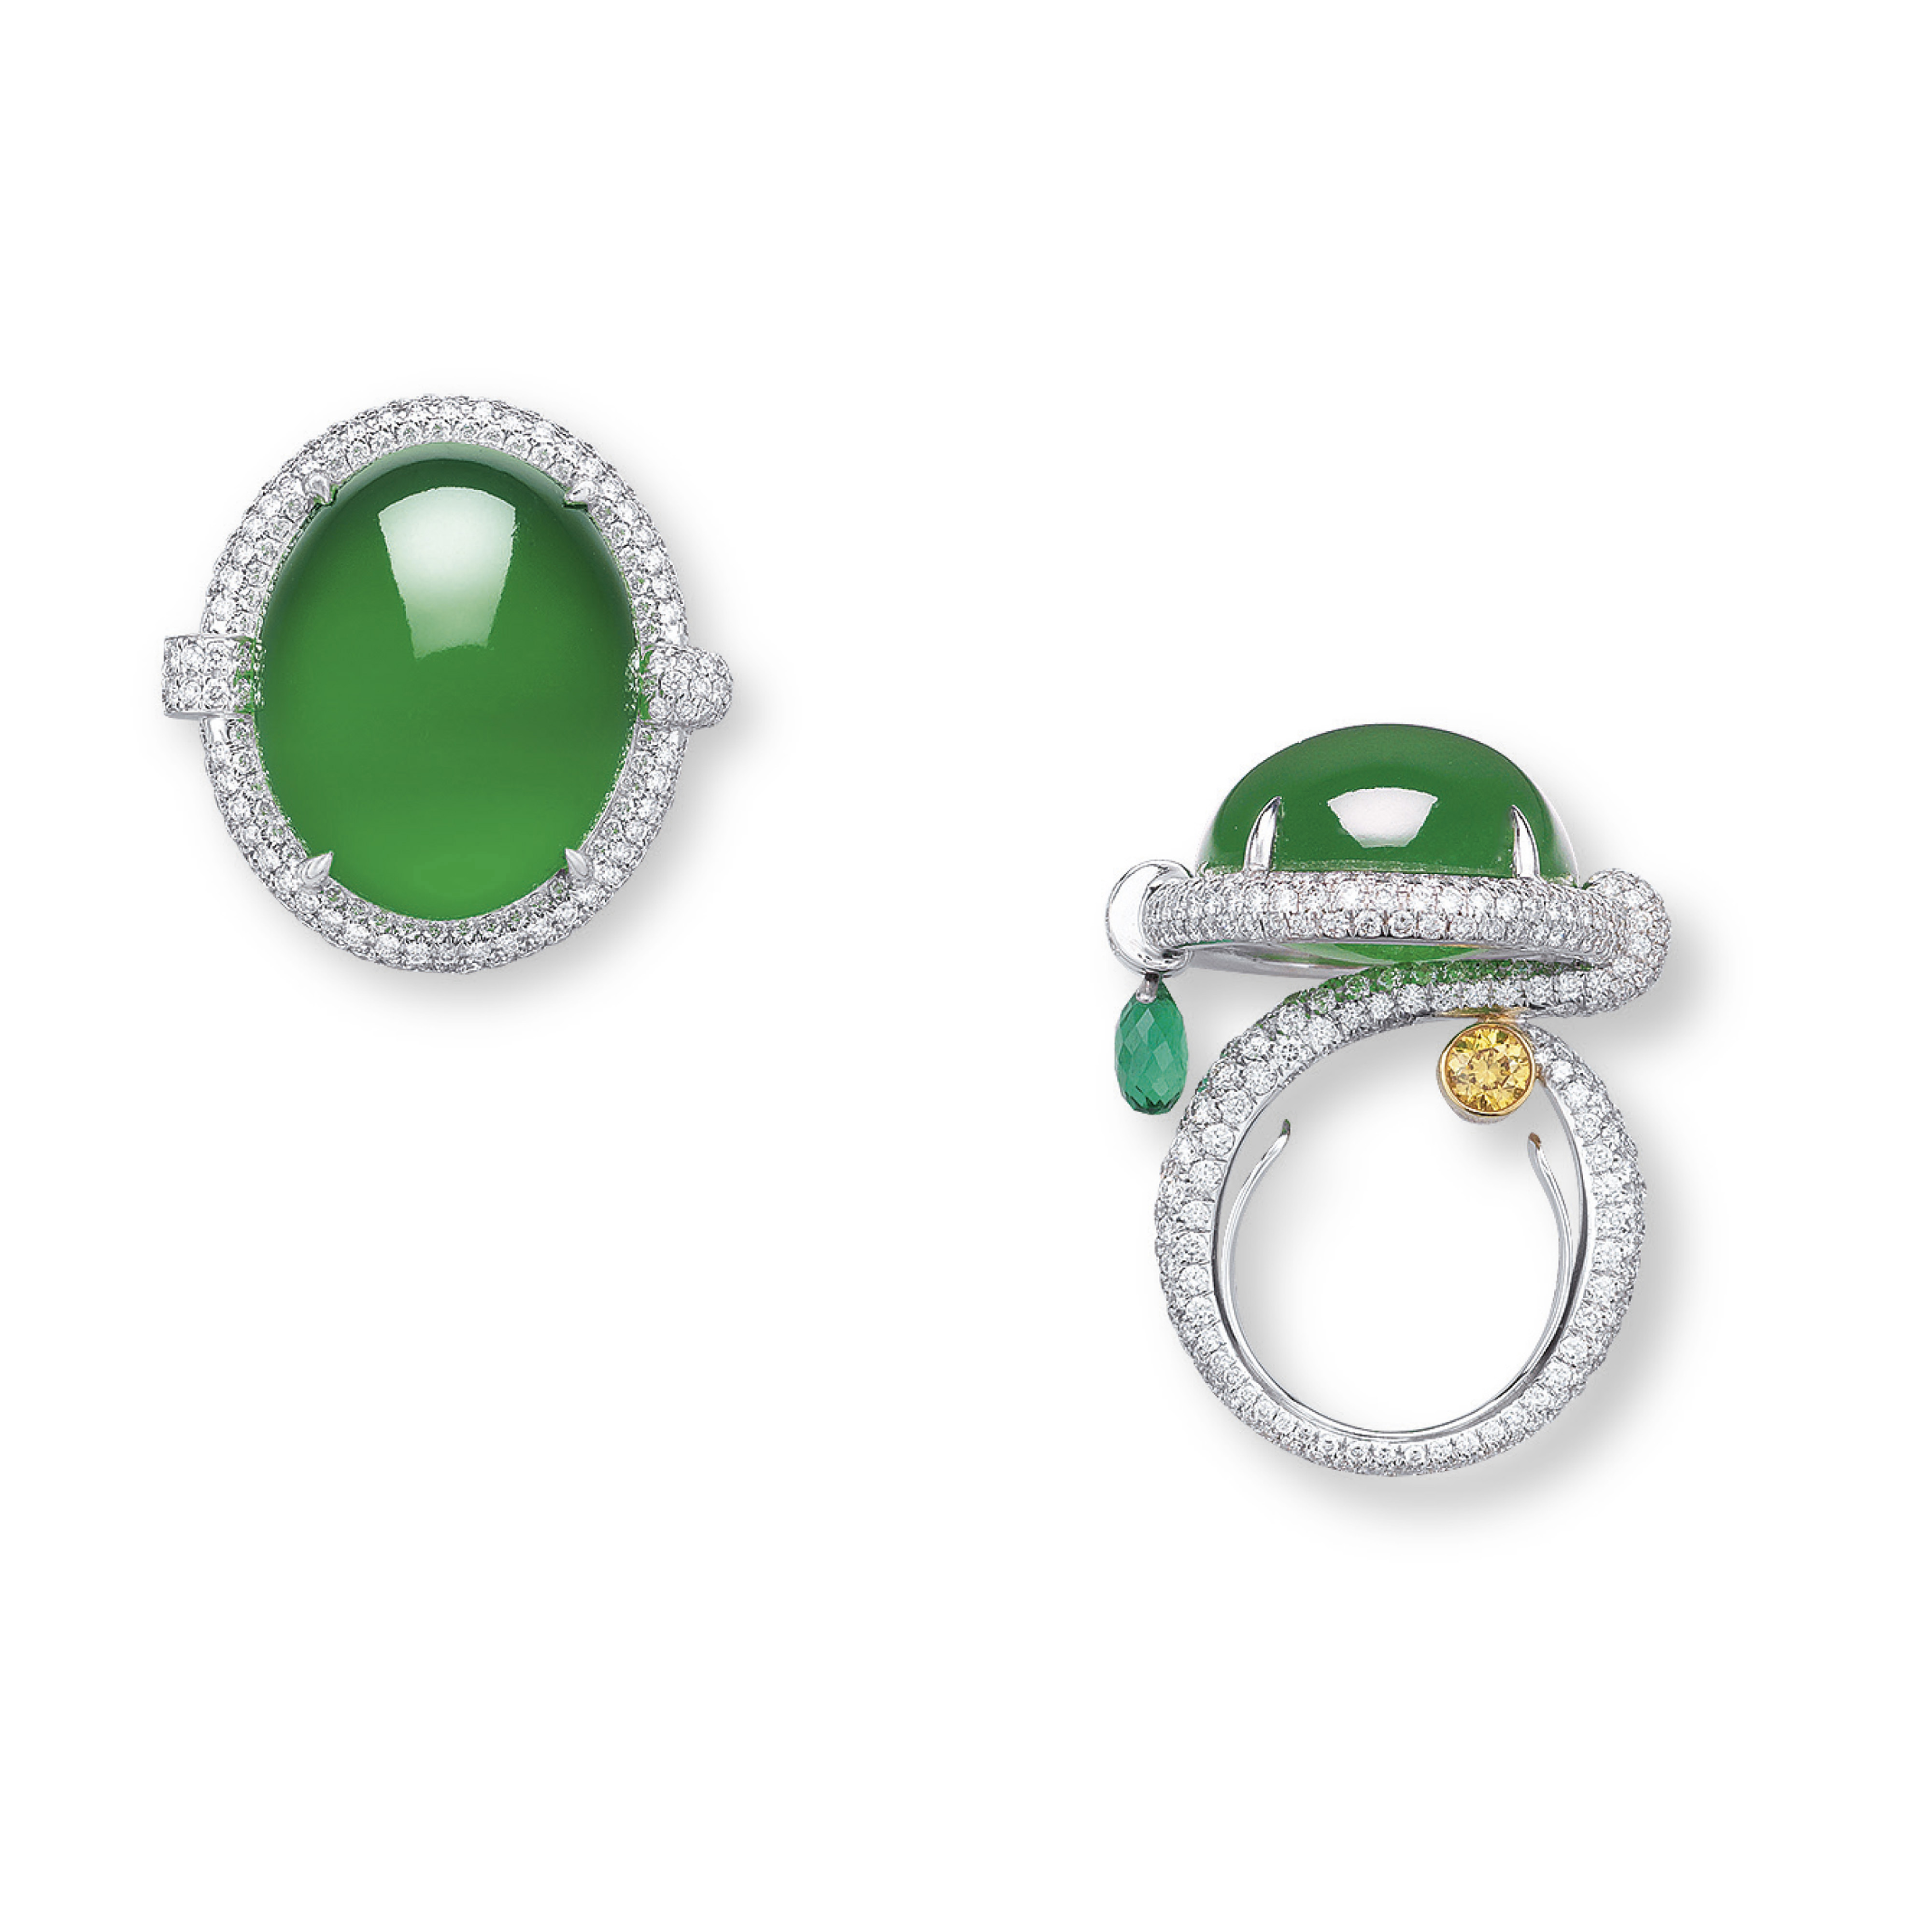 AN EXCEPTIONAL JADEITE AND MULTI-GEM 'ORPHEUS' RING, BY ANNA HU